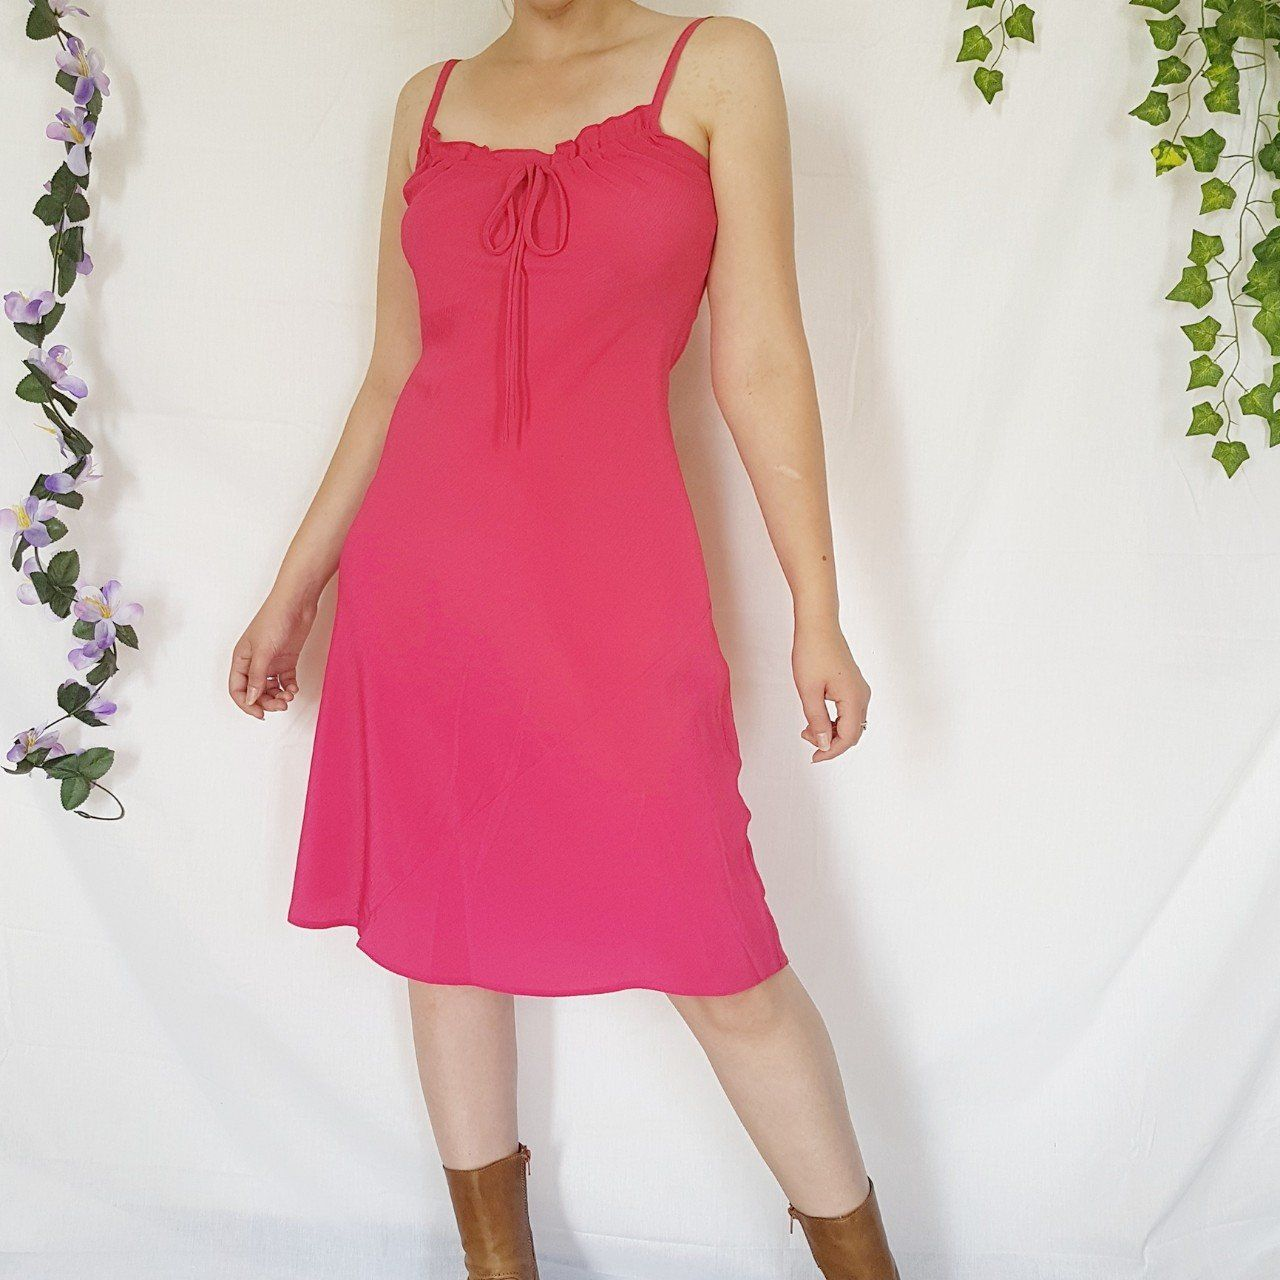 Amazing hot pink y2k dress 1 Dresses, Red dress, Size